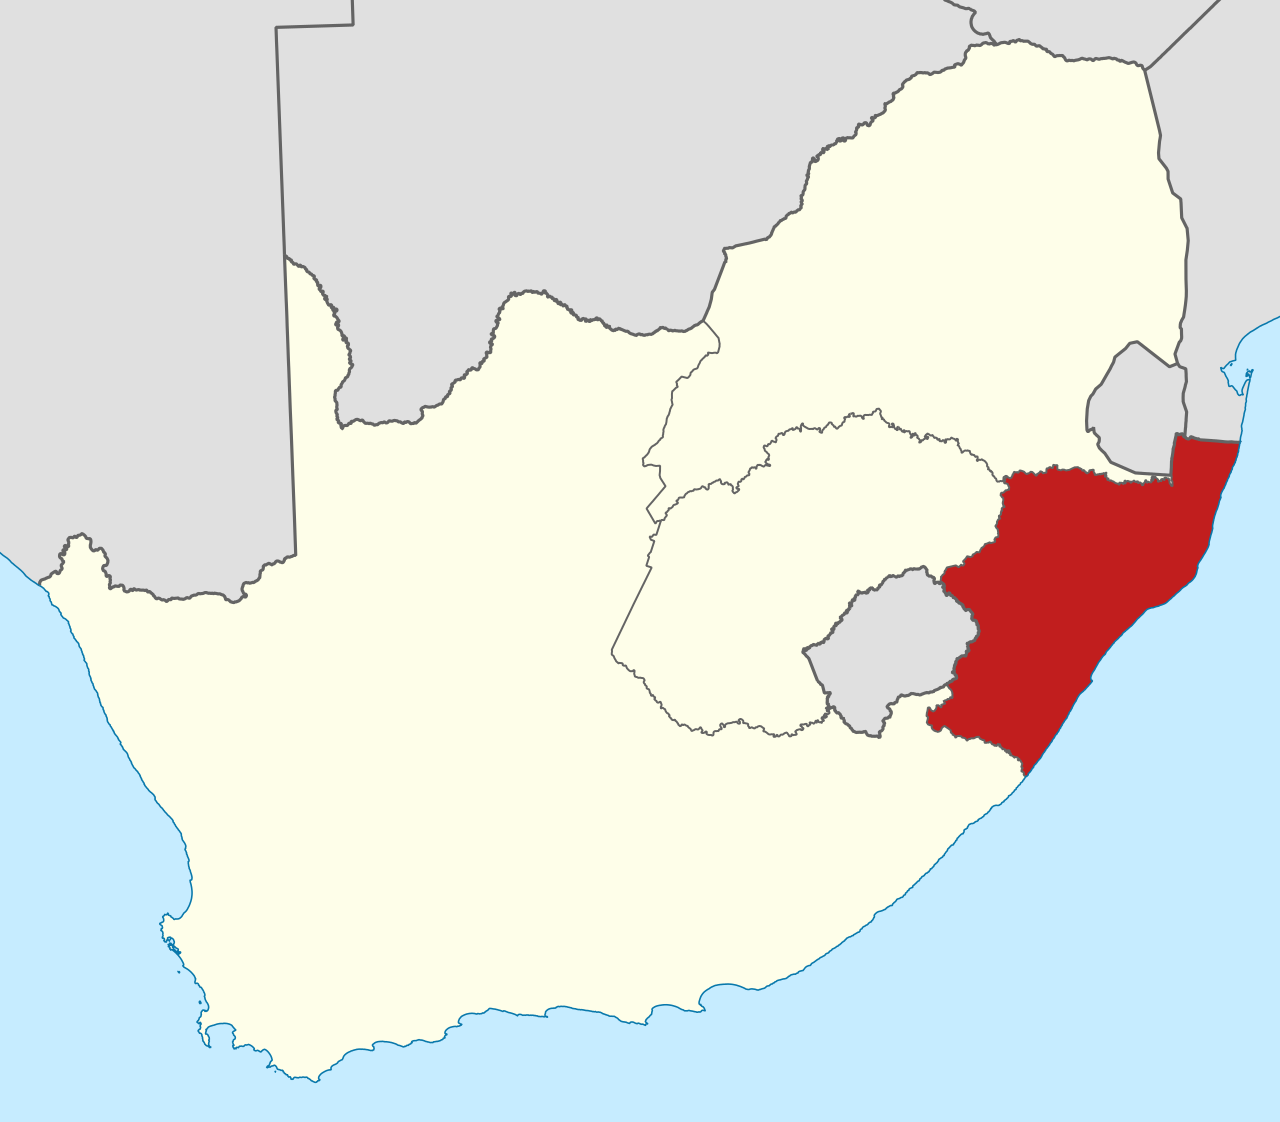 1280px-Map_of_the_provinces_of_South_Africa_1976-1994_with_Natal_highlighted.svg.png